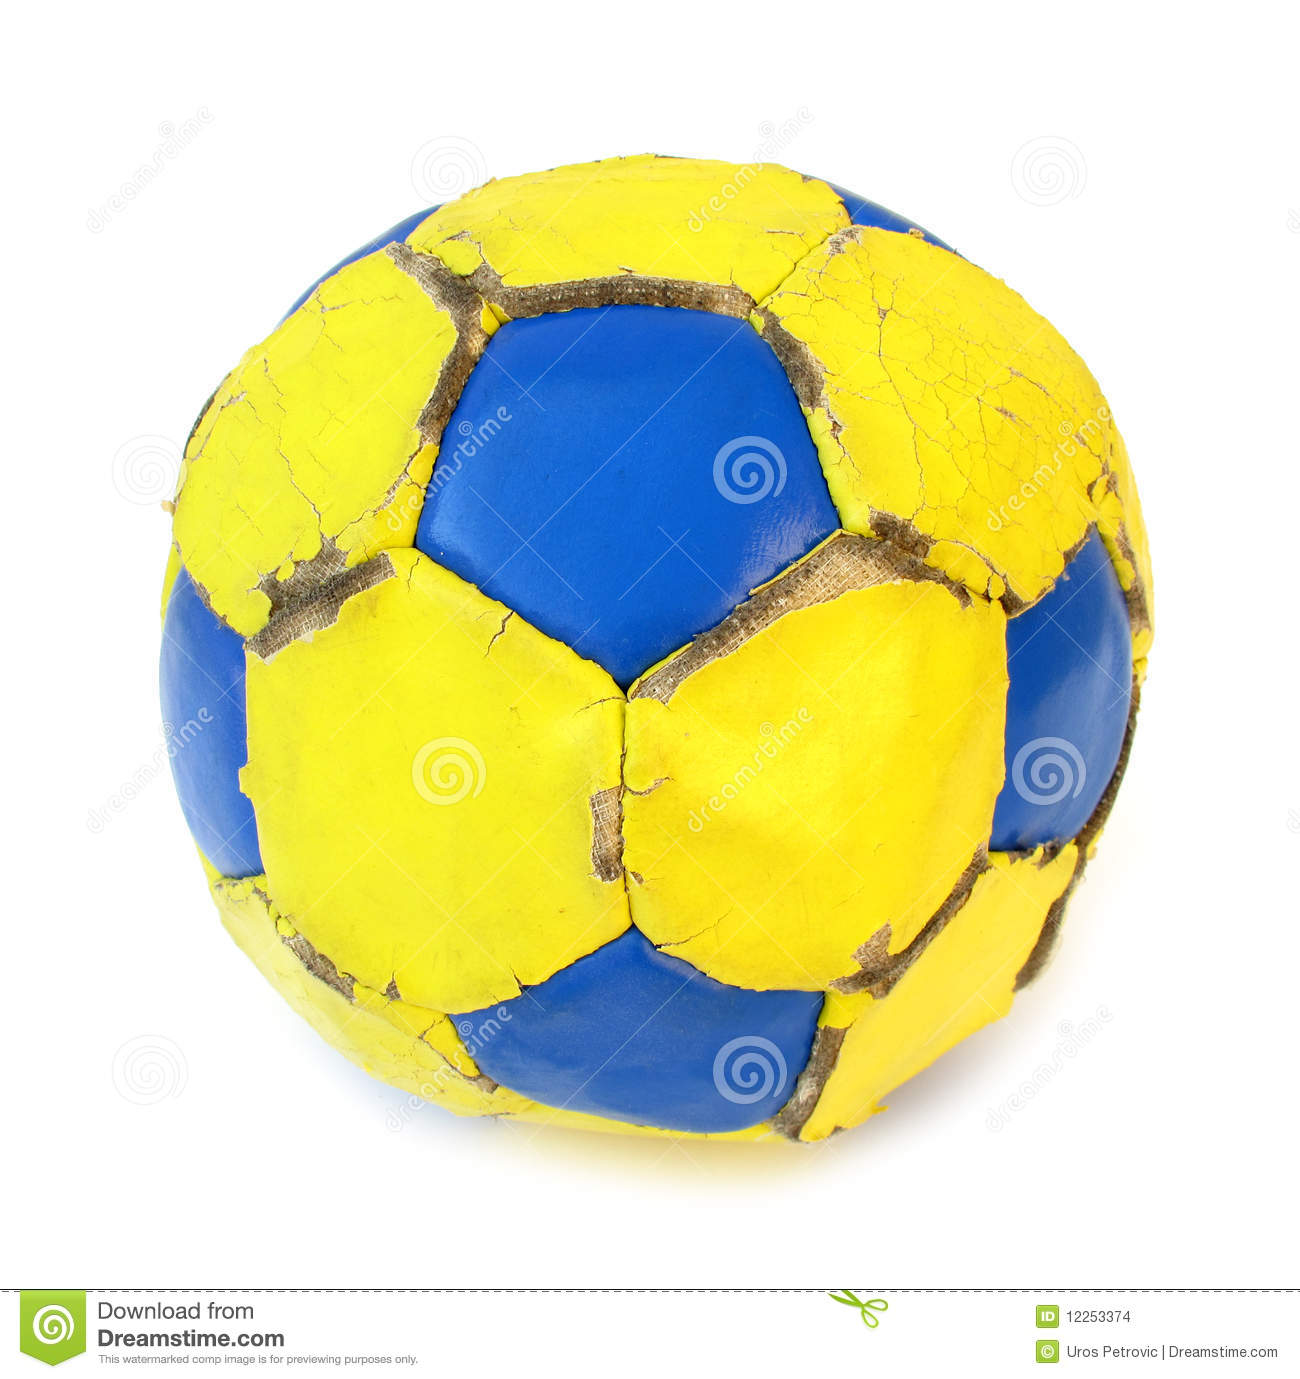 Blue and yellow soccer/football ball